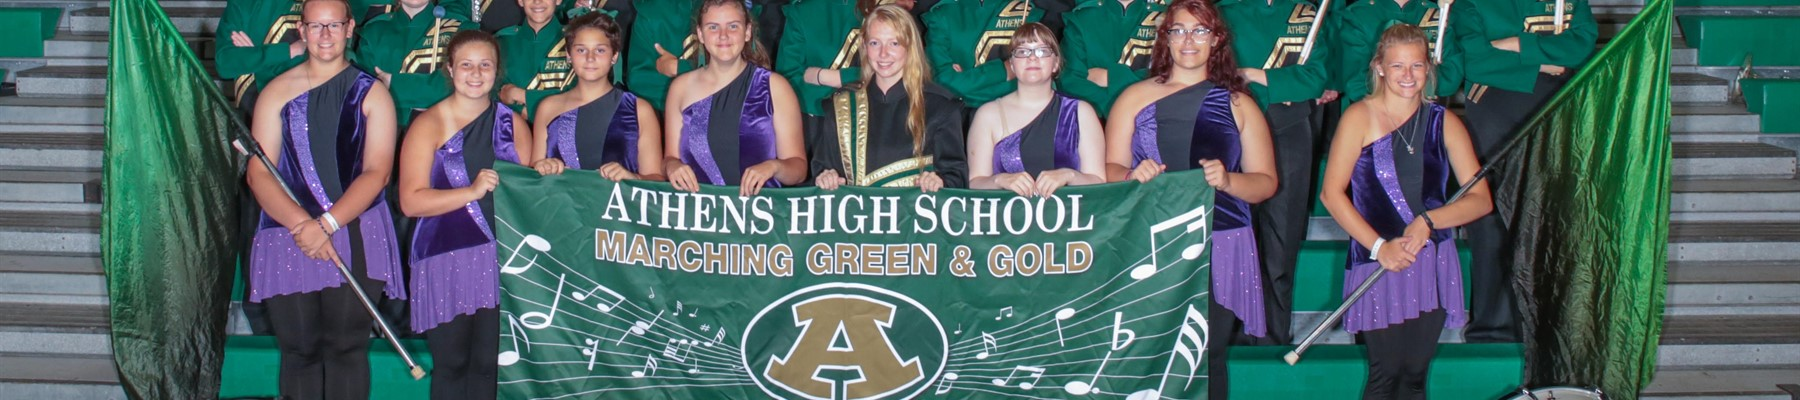 AHS Marching Green and Gold 2019 (1 of 2)